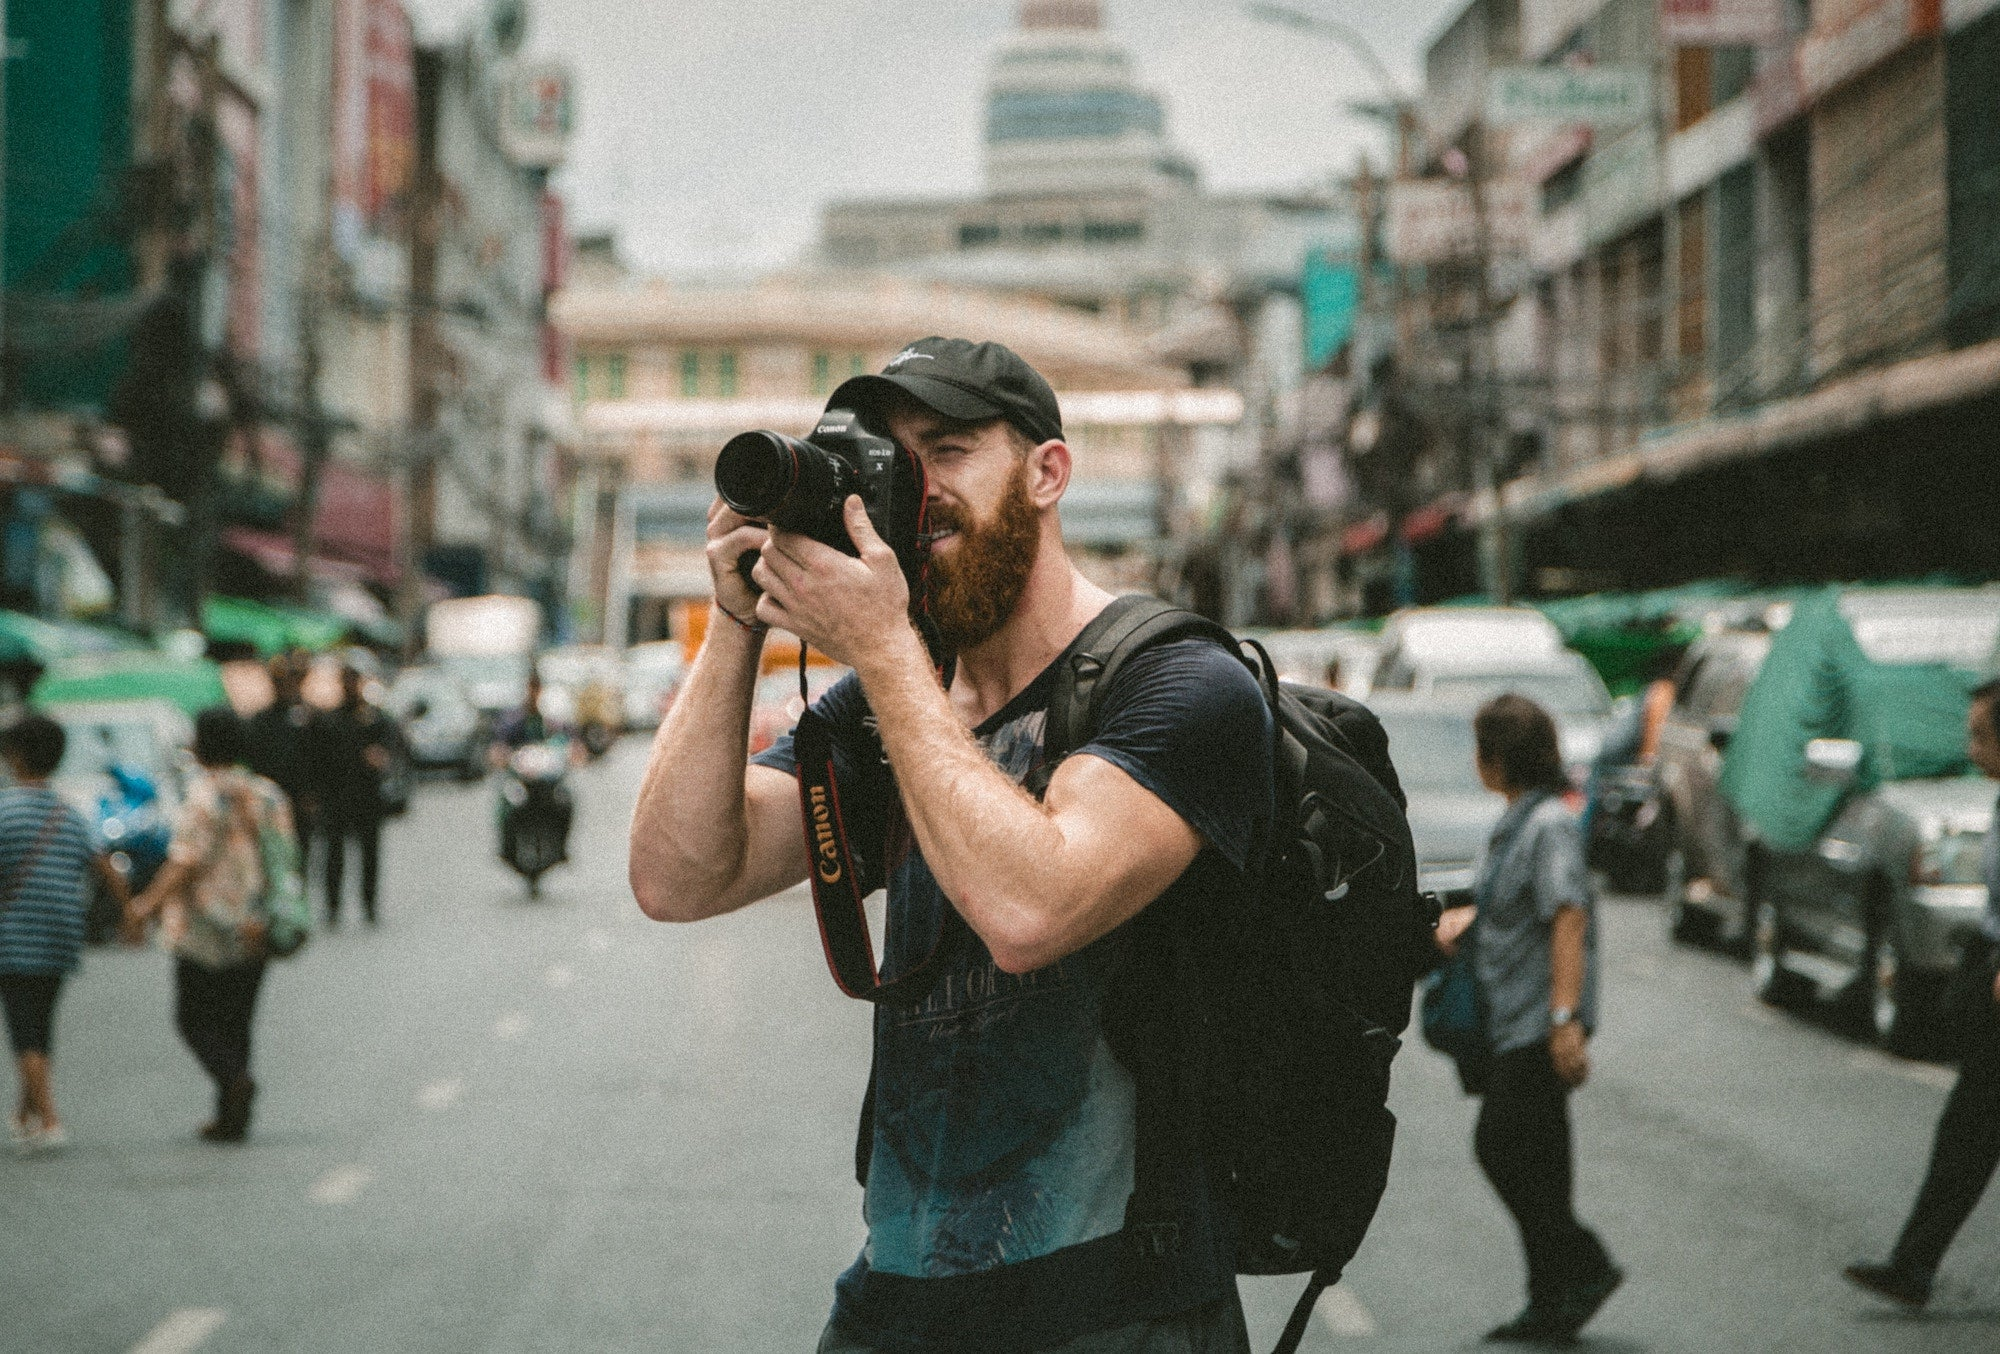 man taking a photo in an urban area